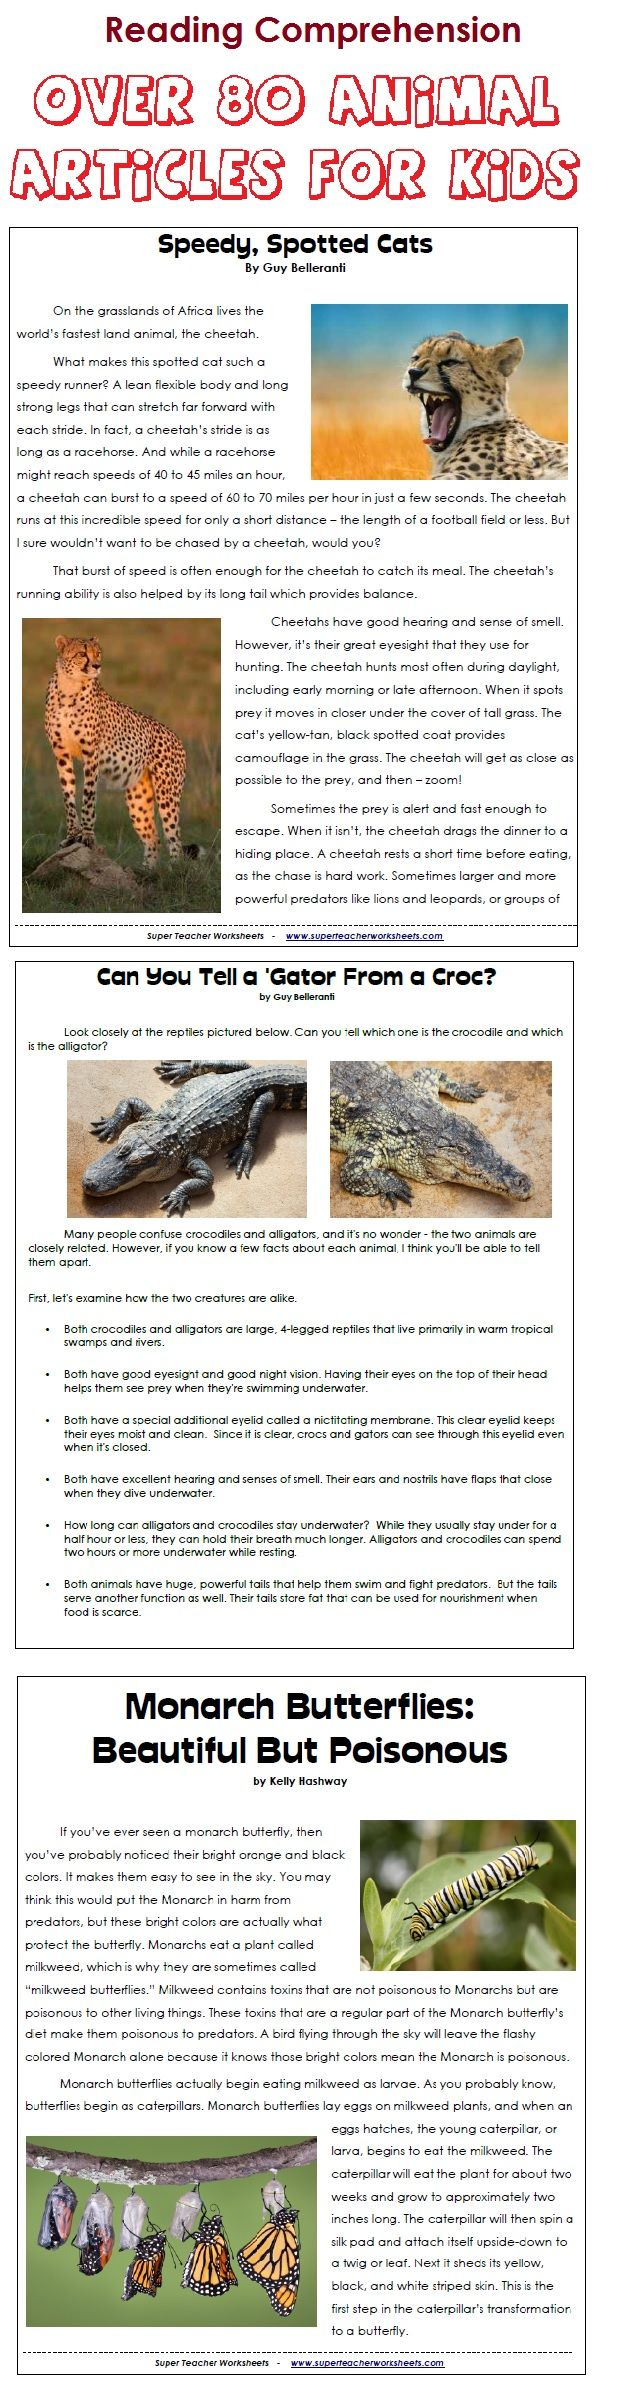 Worksheets Animal Adaptations Worksheets 71 best science habitats images on pinterest teaching download 80 printable animal articles with reading comprehension questions